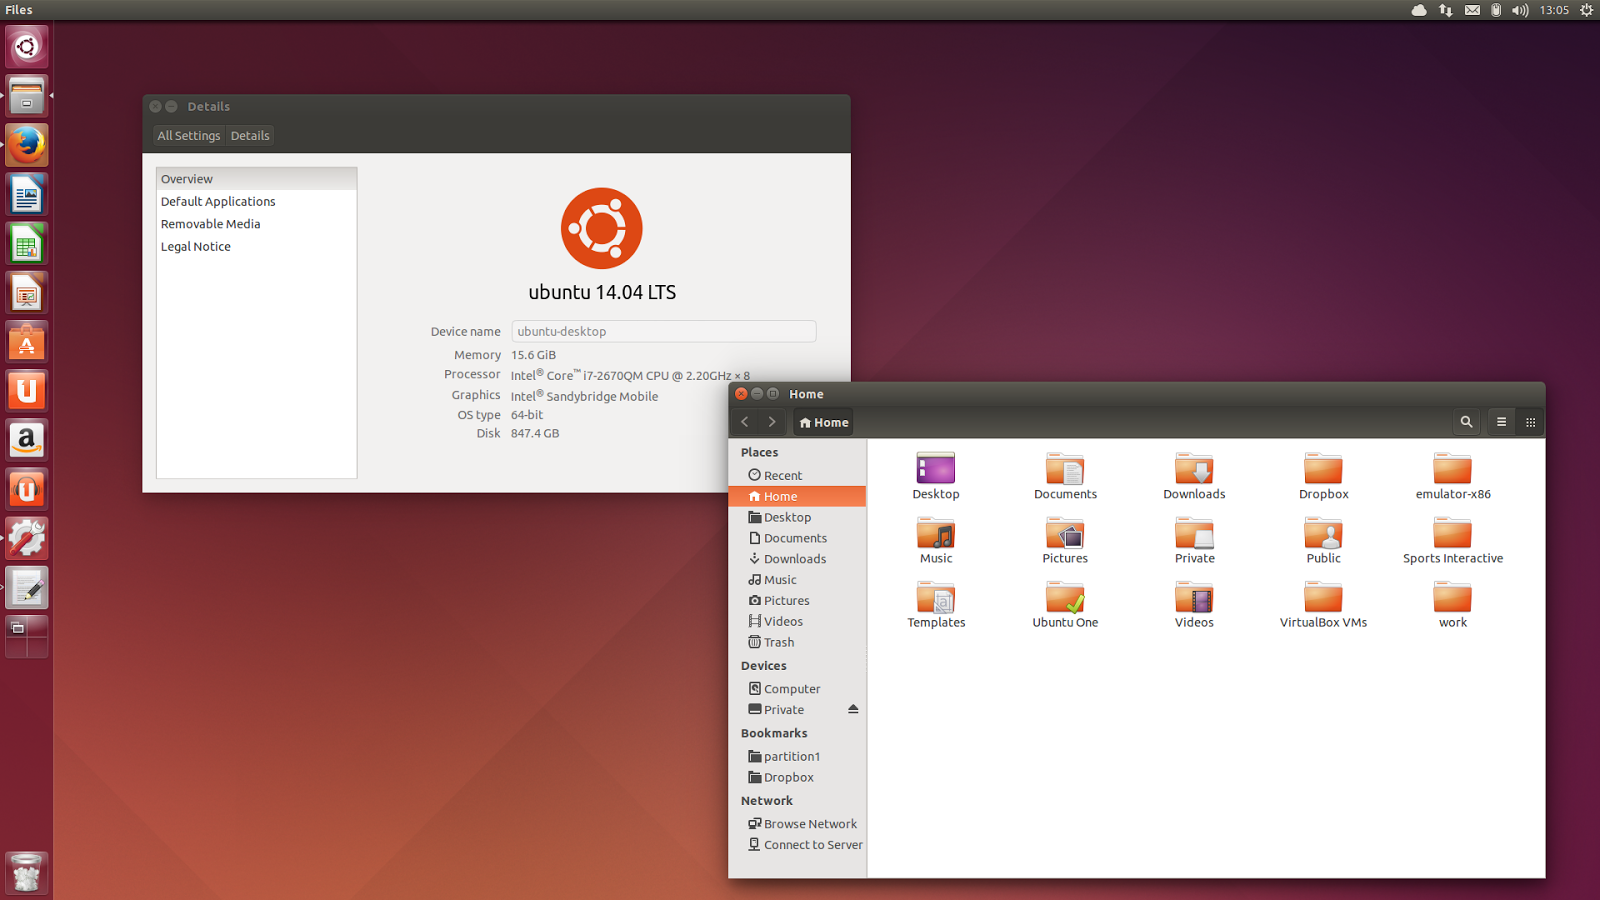 Ubuntu 14.04 Screenshot